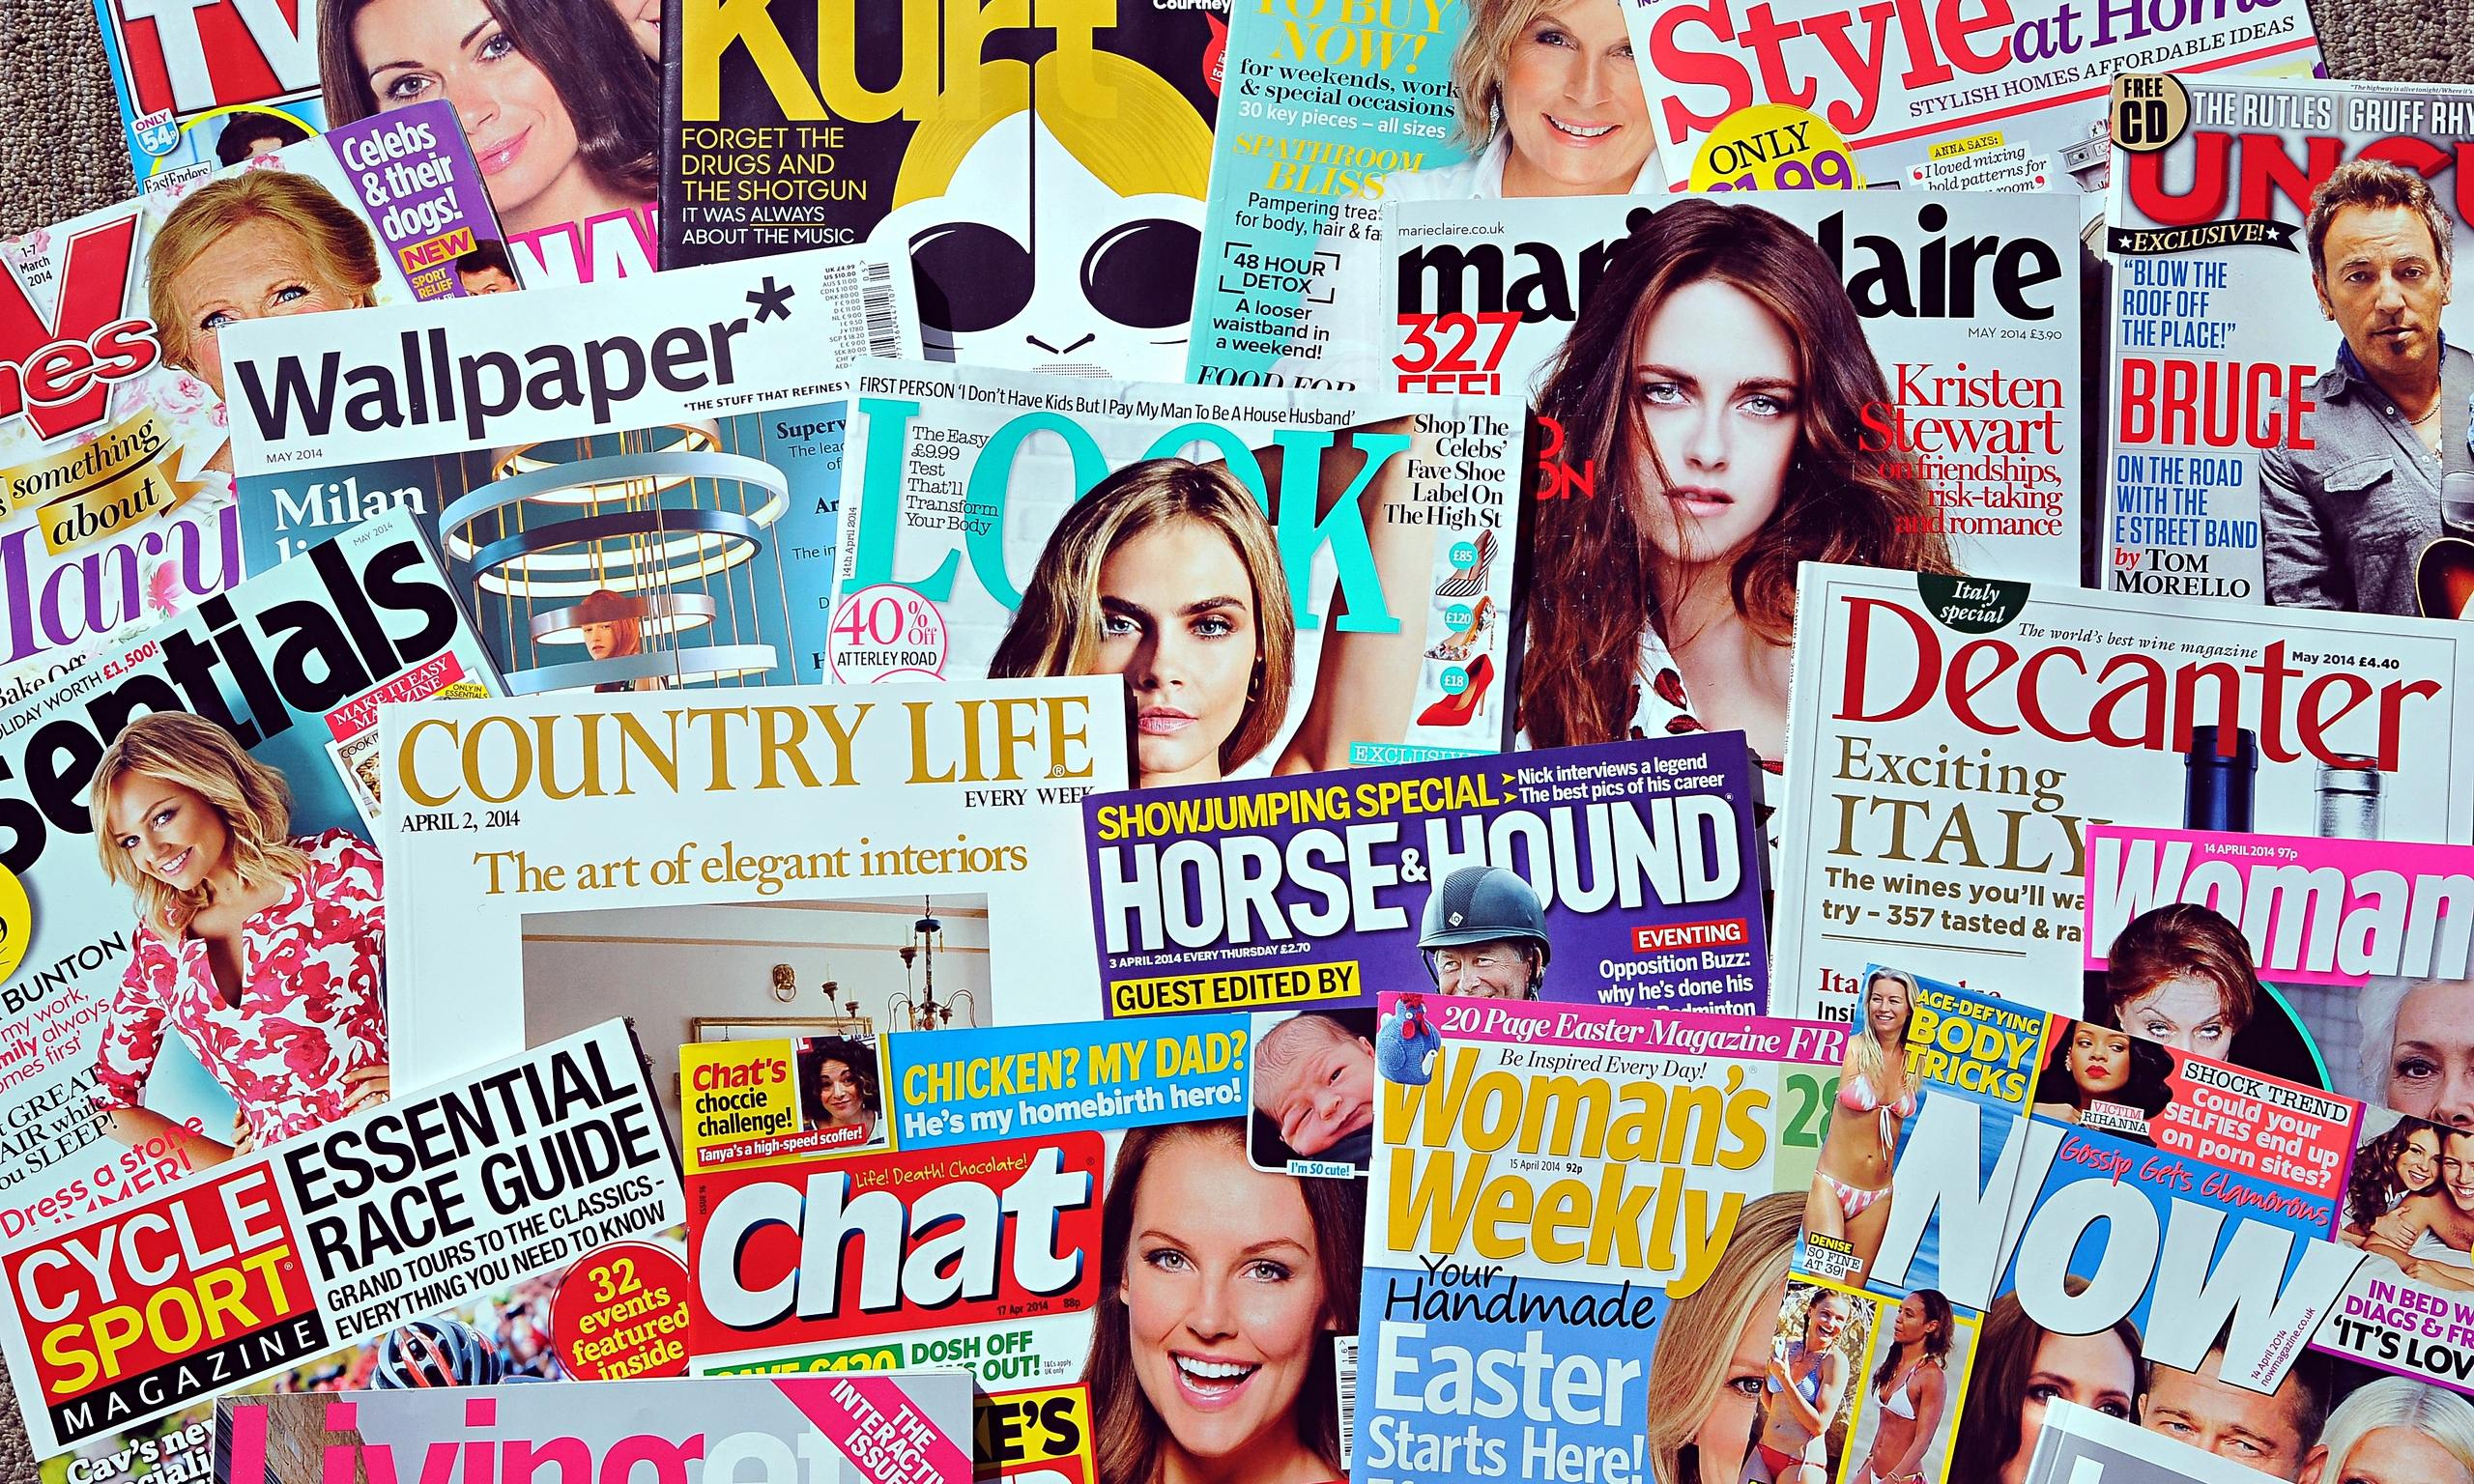 IPC name to disappear as Time Inc rebrands magazine publisher | Media | The Guardian